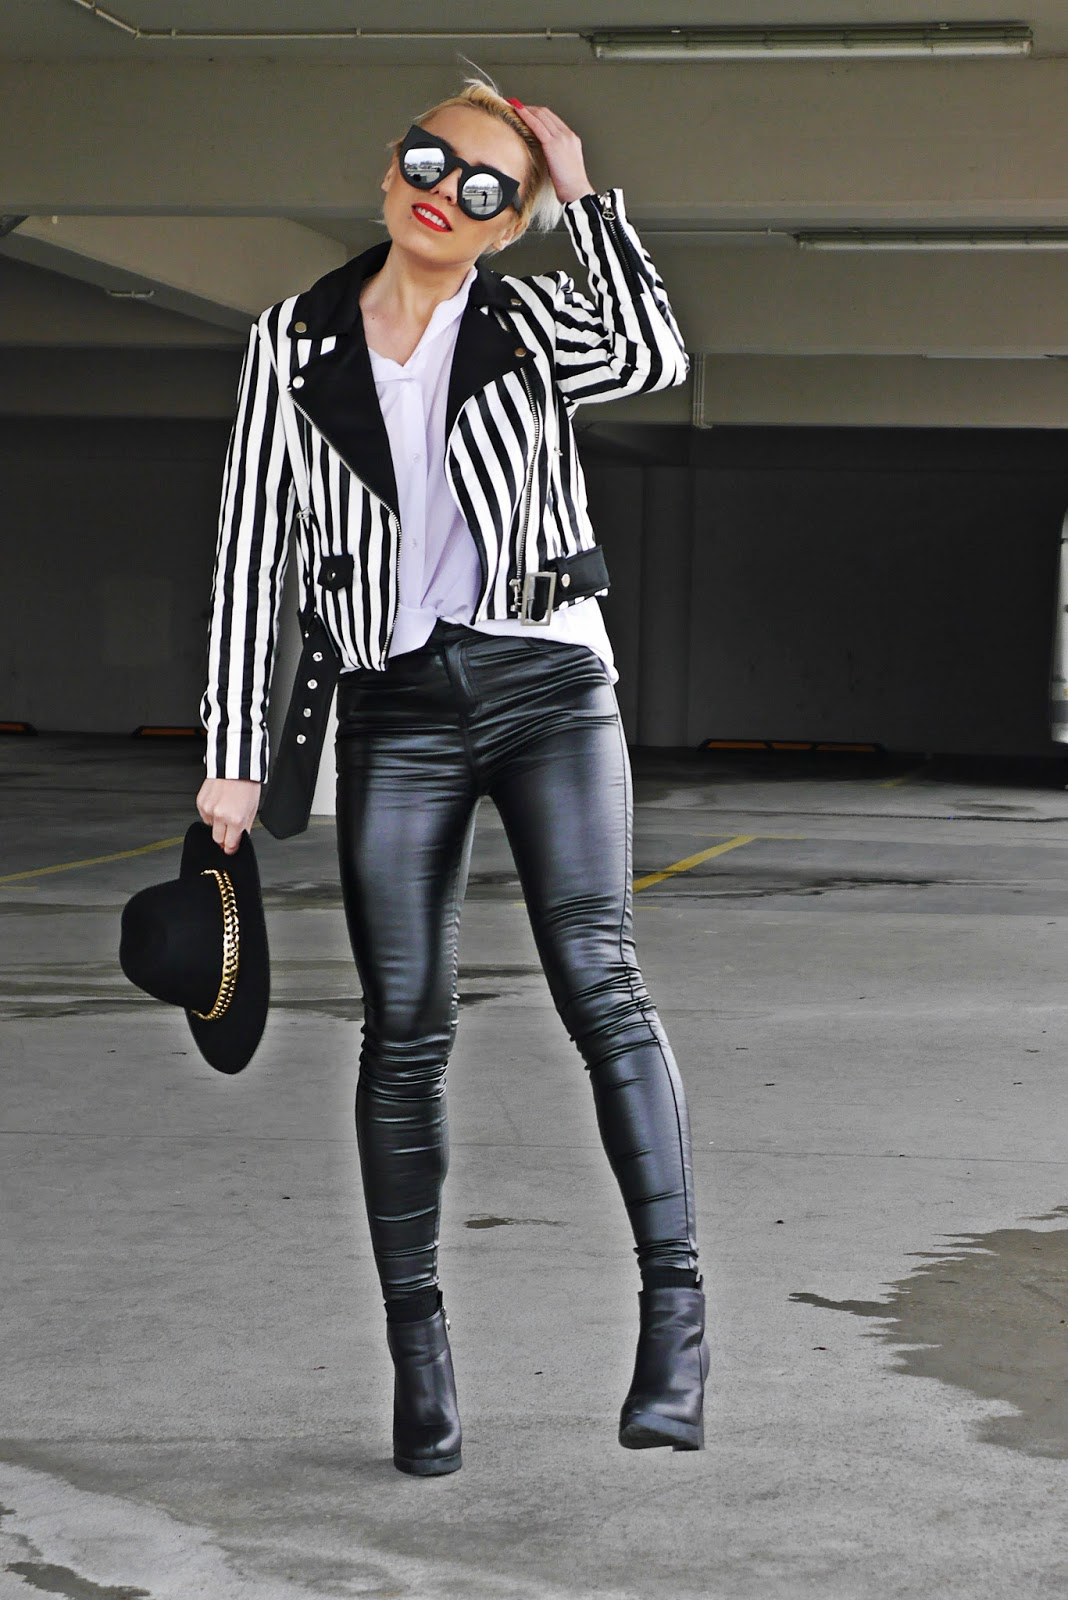 stripes_biker_jacket_leather_pants_karyn_blog_look_230317c